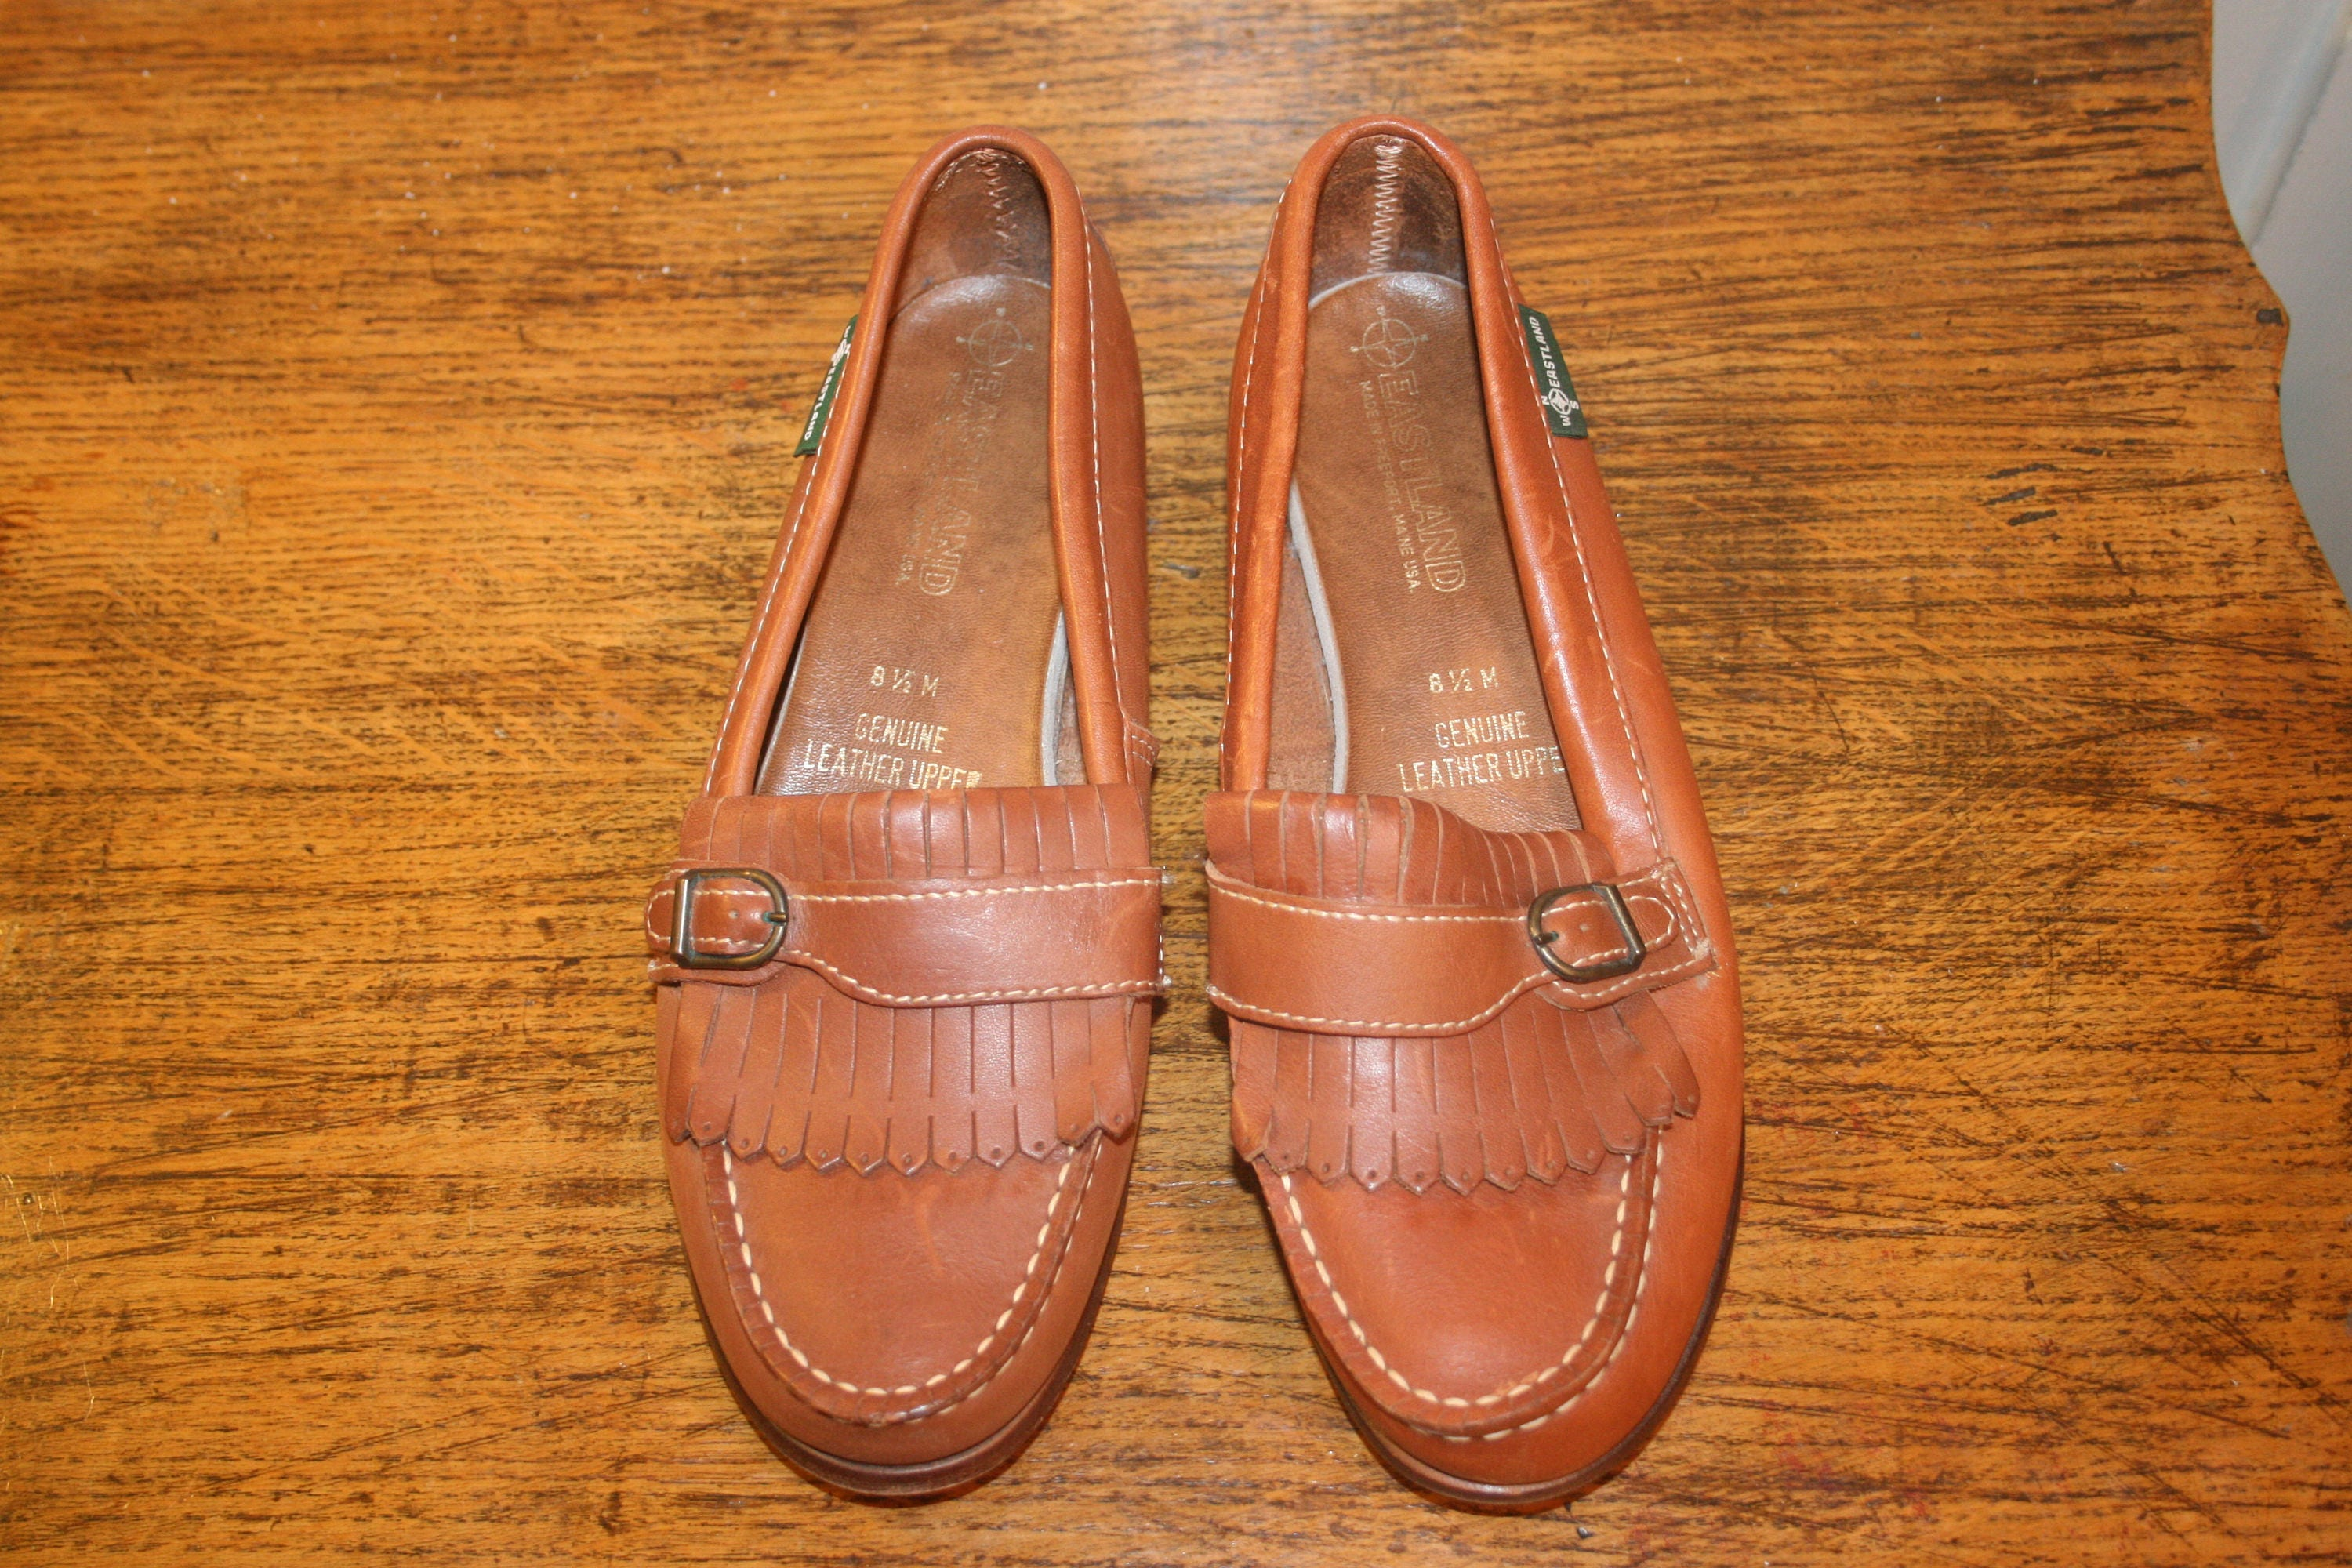 ea04fbcc0ae Size 8.5BOHO LEATHER LOAFERSsize 8.5 loafers8.5